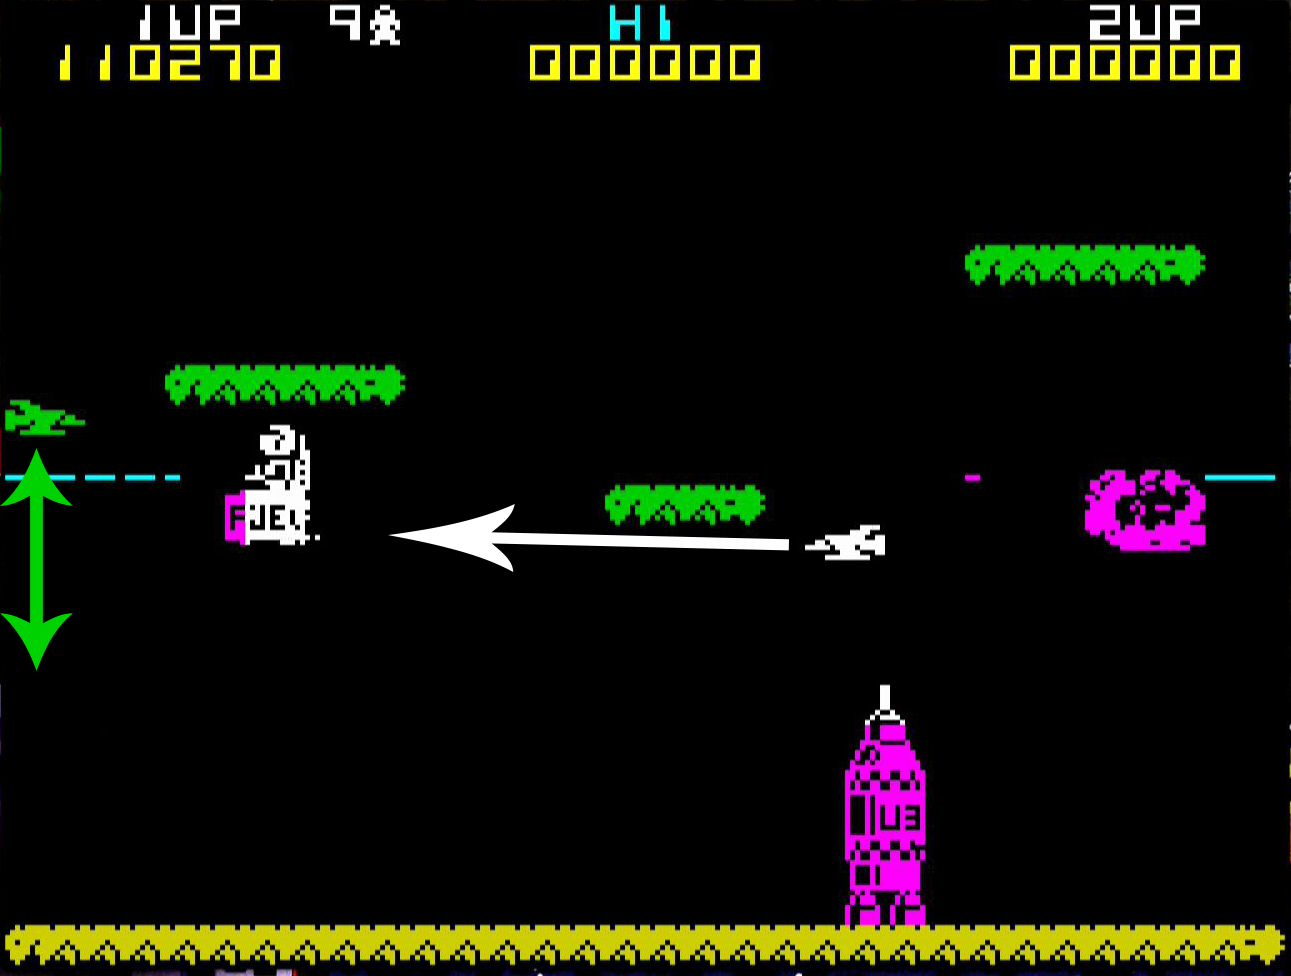 In later levels we have enemies which will seek the player. These jet like enemies will travel up and down the sides of the screen a couple of times. Then turn white and charge at the player. If they hit something on the way they explode. The predictable movement of all the enemies makes the game considerably less frustrating.